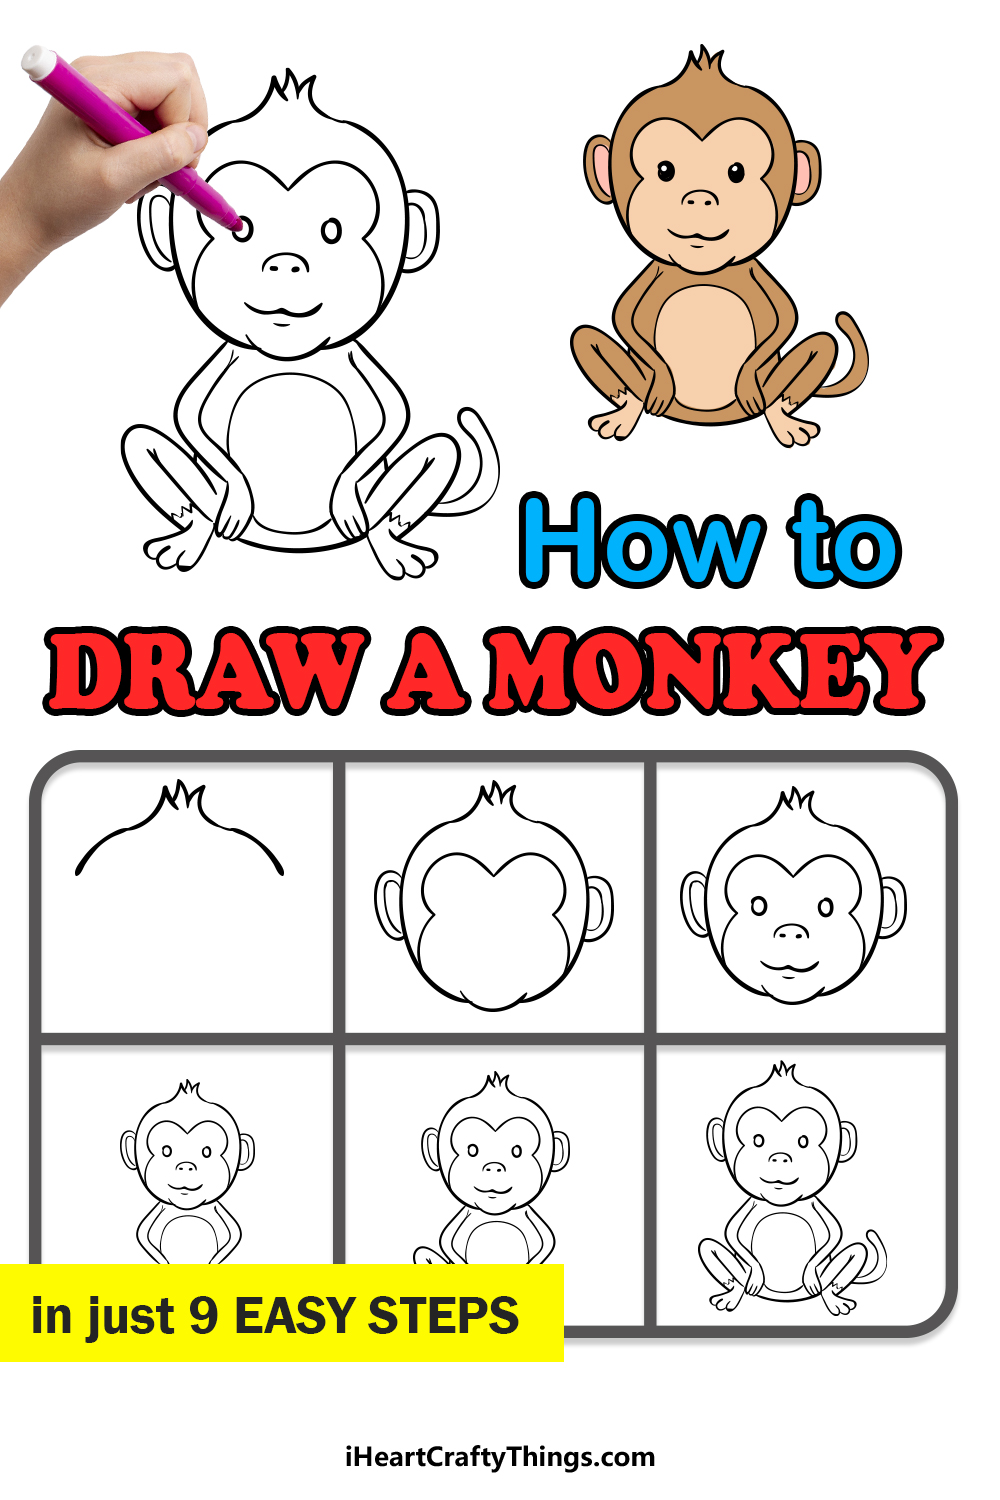 how to draw a monkey in 9 easy steps